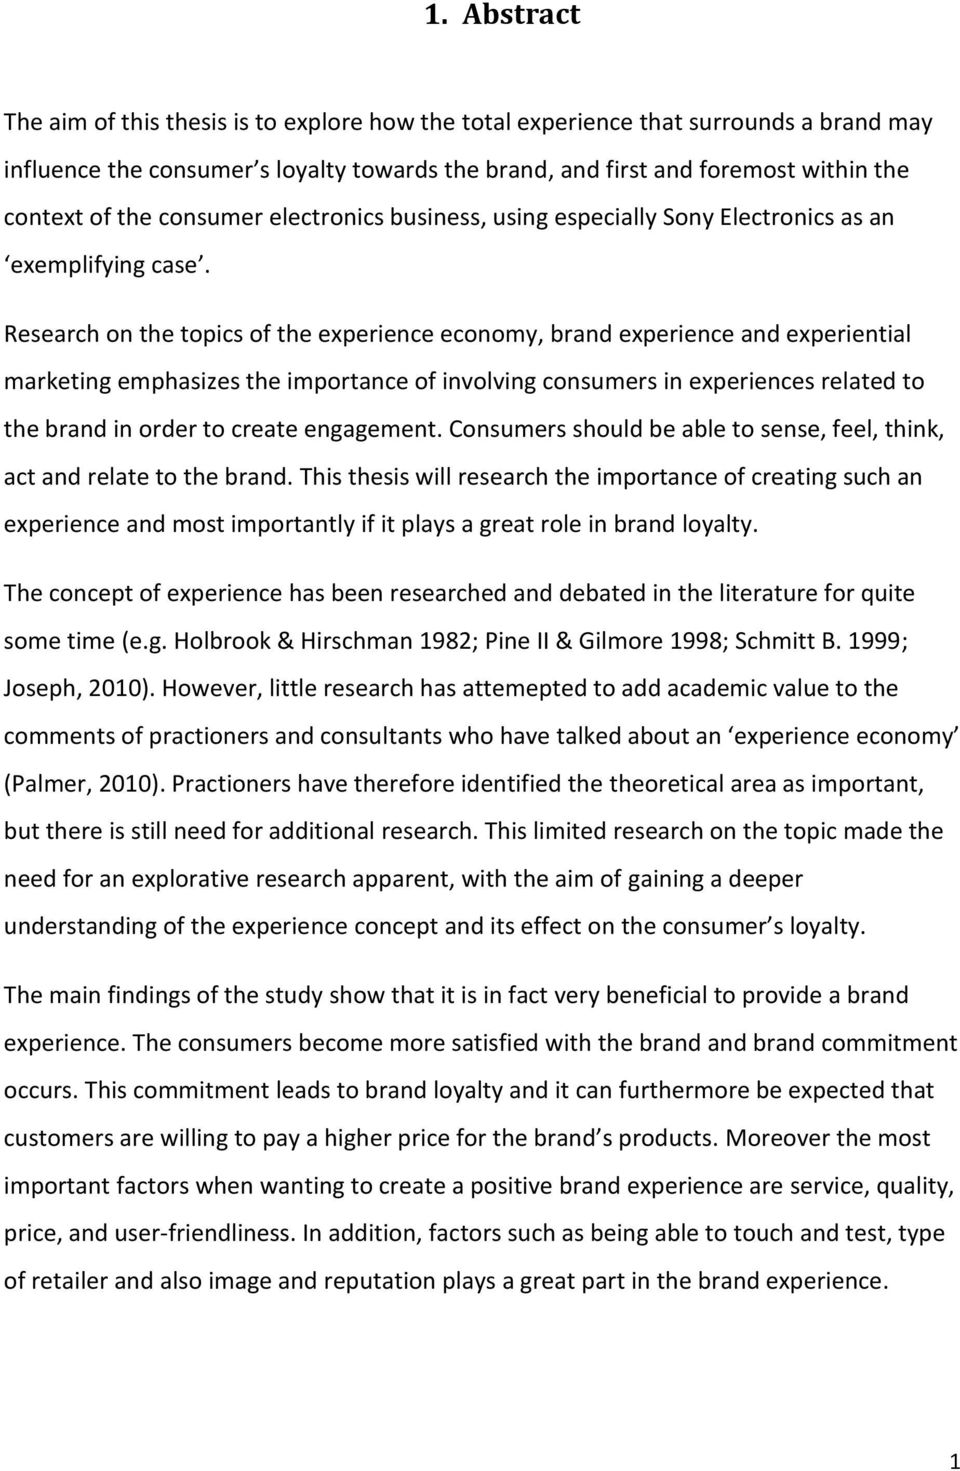 Research on the topics of the experience economy, brand experience and experiential marketing emphasizes the importance of involving consumers in experiences related to the brand in order to create